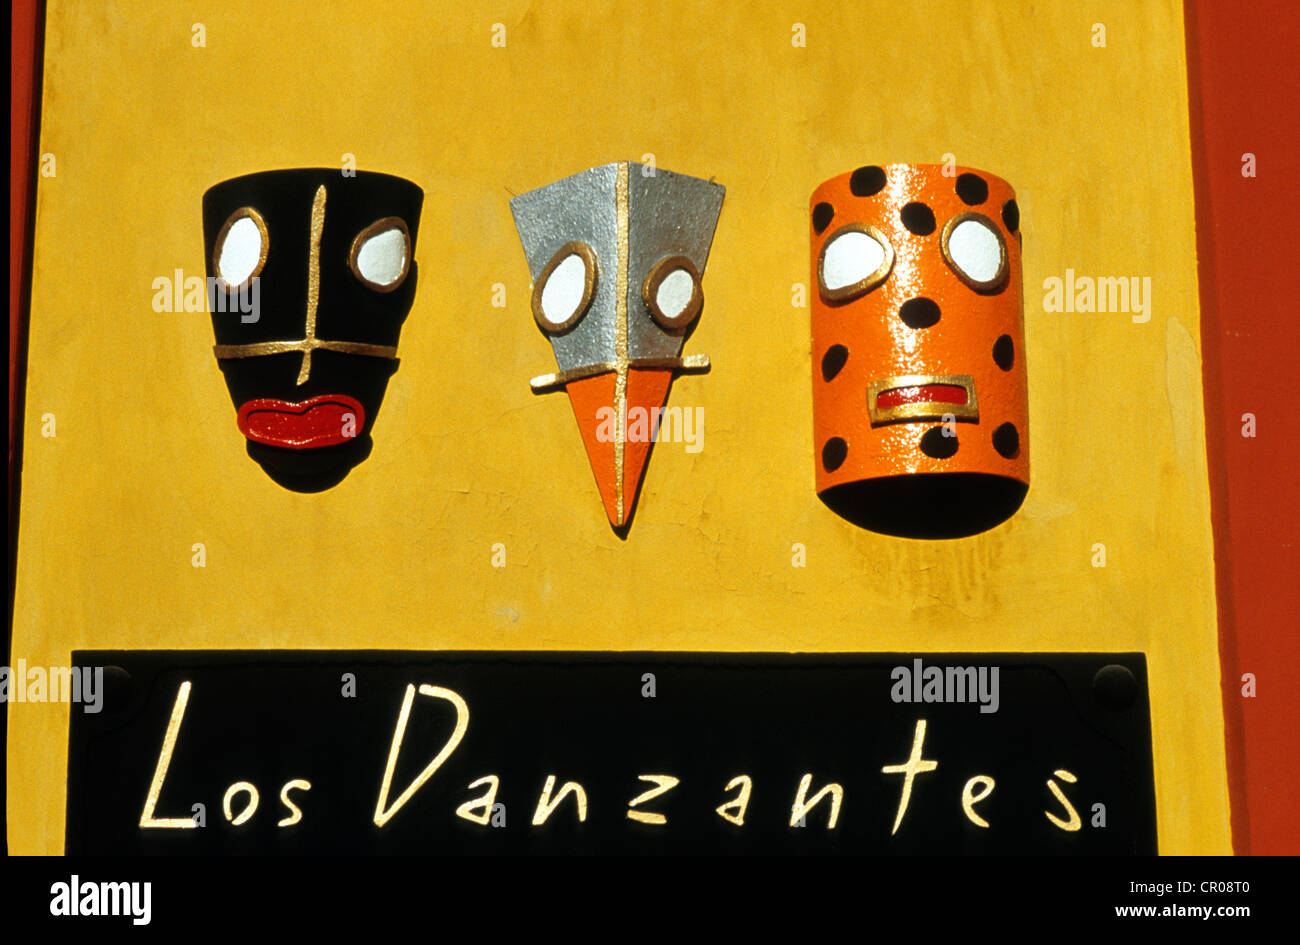 Mexico, Oaxaca State, Oaxaca city, art gallery figuring masks - Stock Image